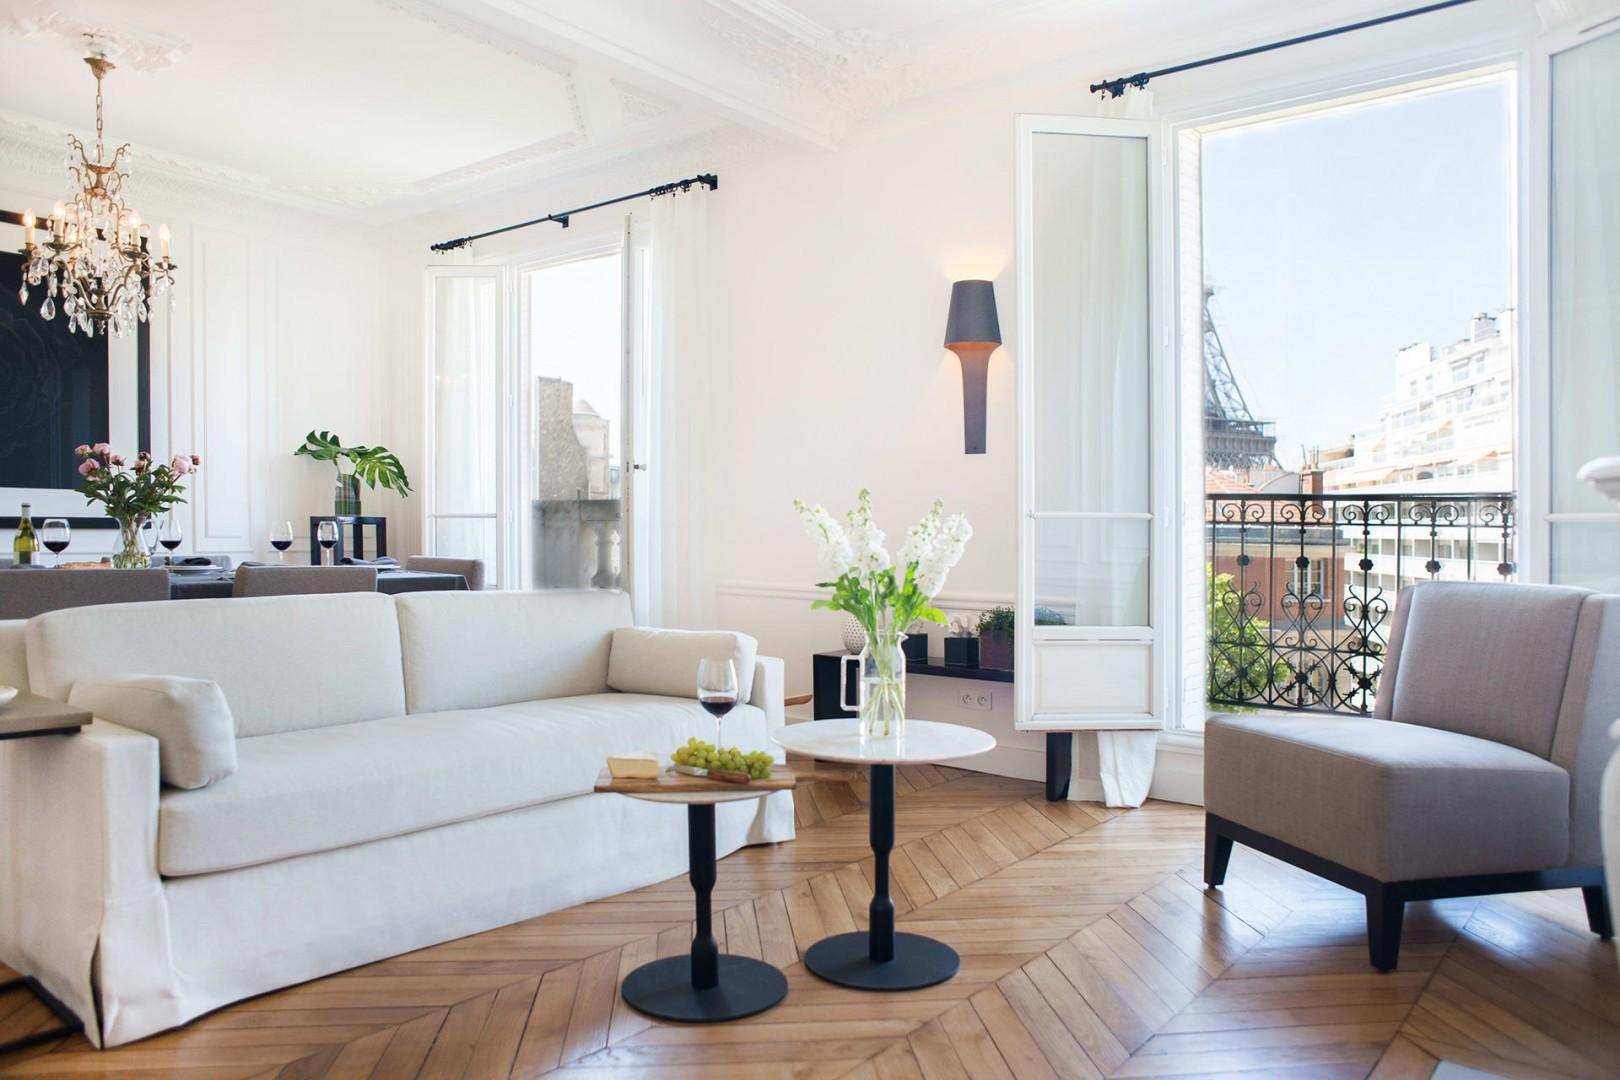 Welcome to our beautiful and sunny Marsannay rental in Paris!